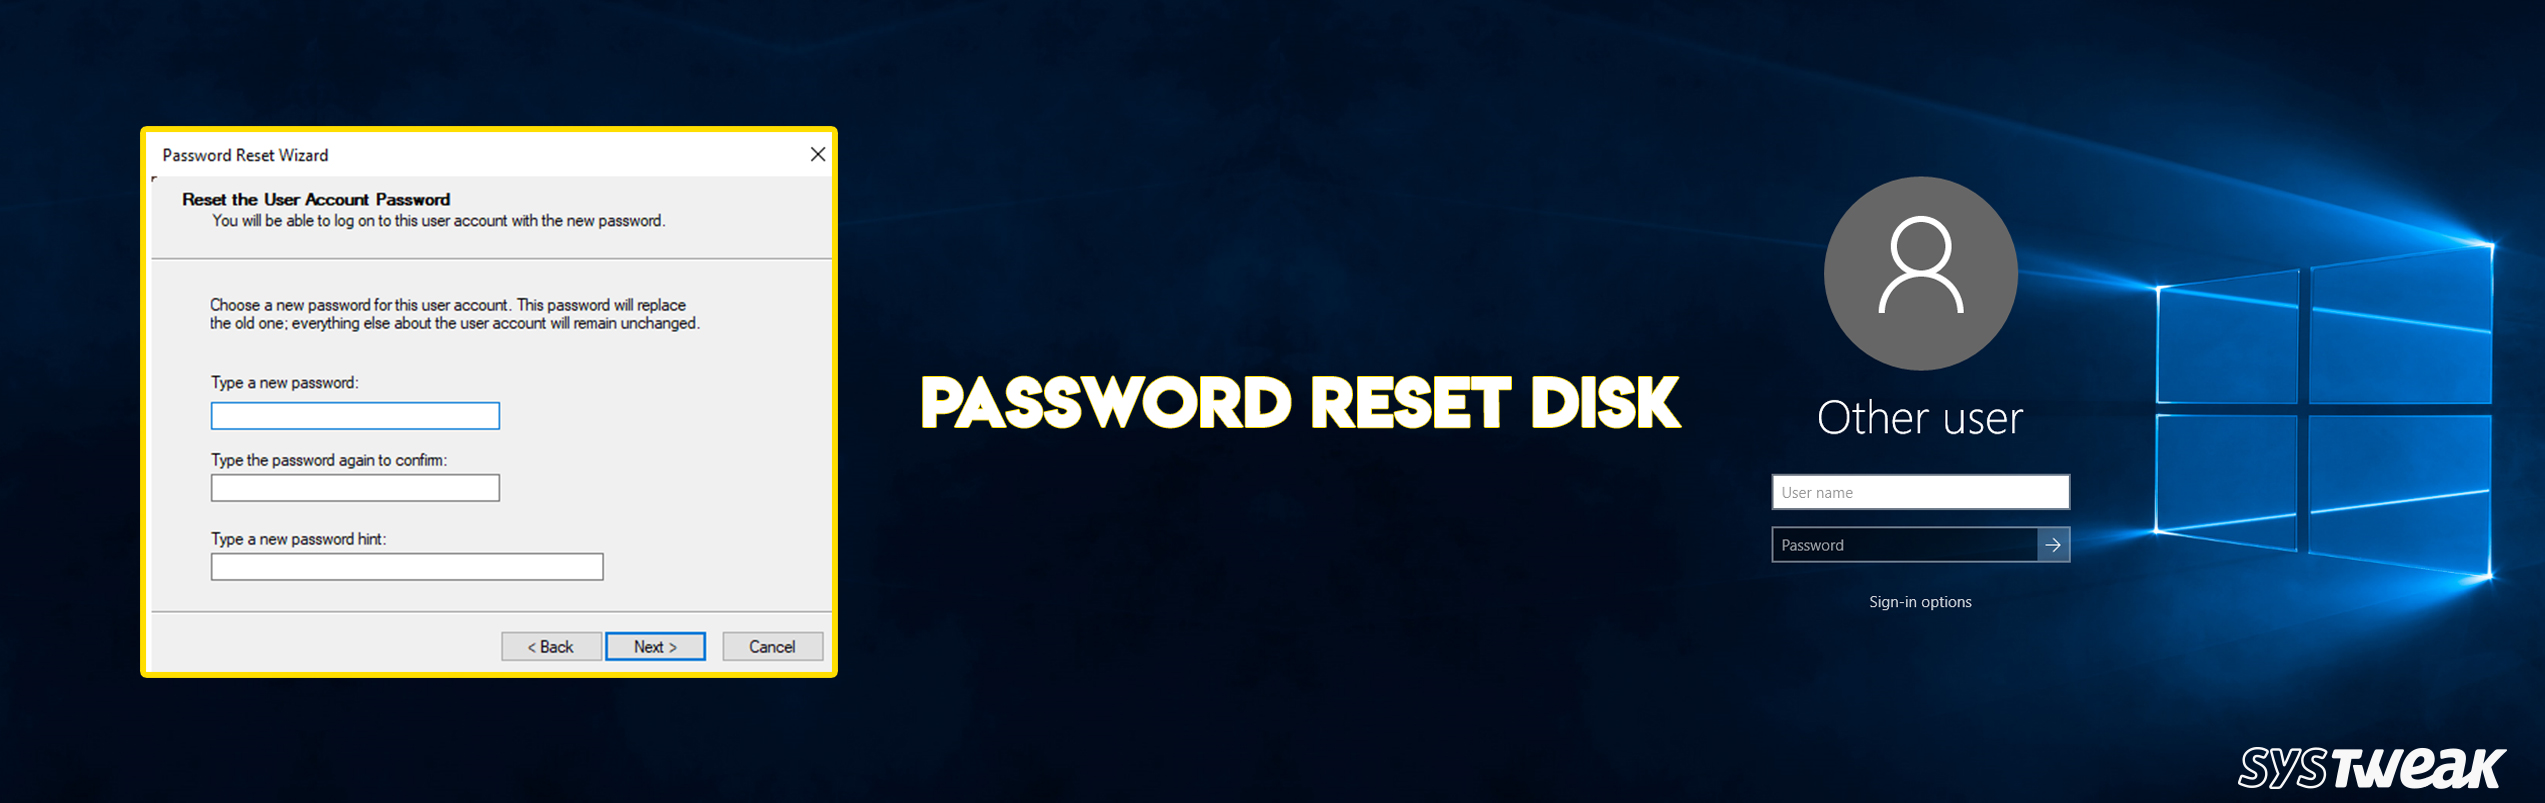 How To Create And Use A Password Reset Disk In Windows 10